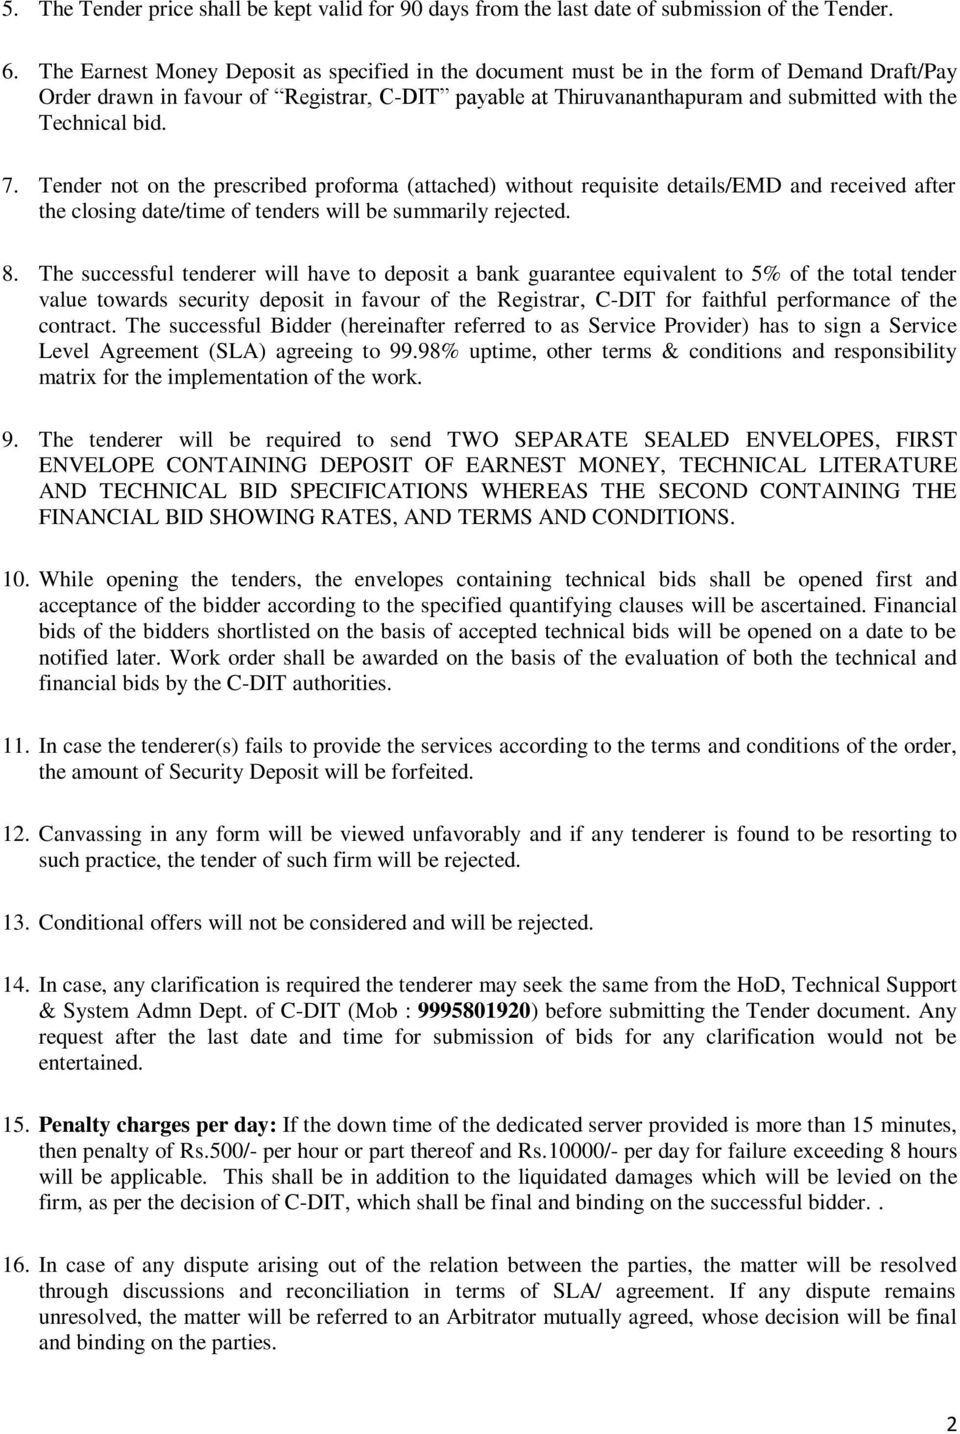 bid. 7. Tender not on the prescribed proforma (attached) without requisite details/emd and received after the closing date/time of tenders will be summarily rejected. 8.